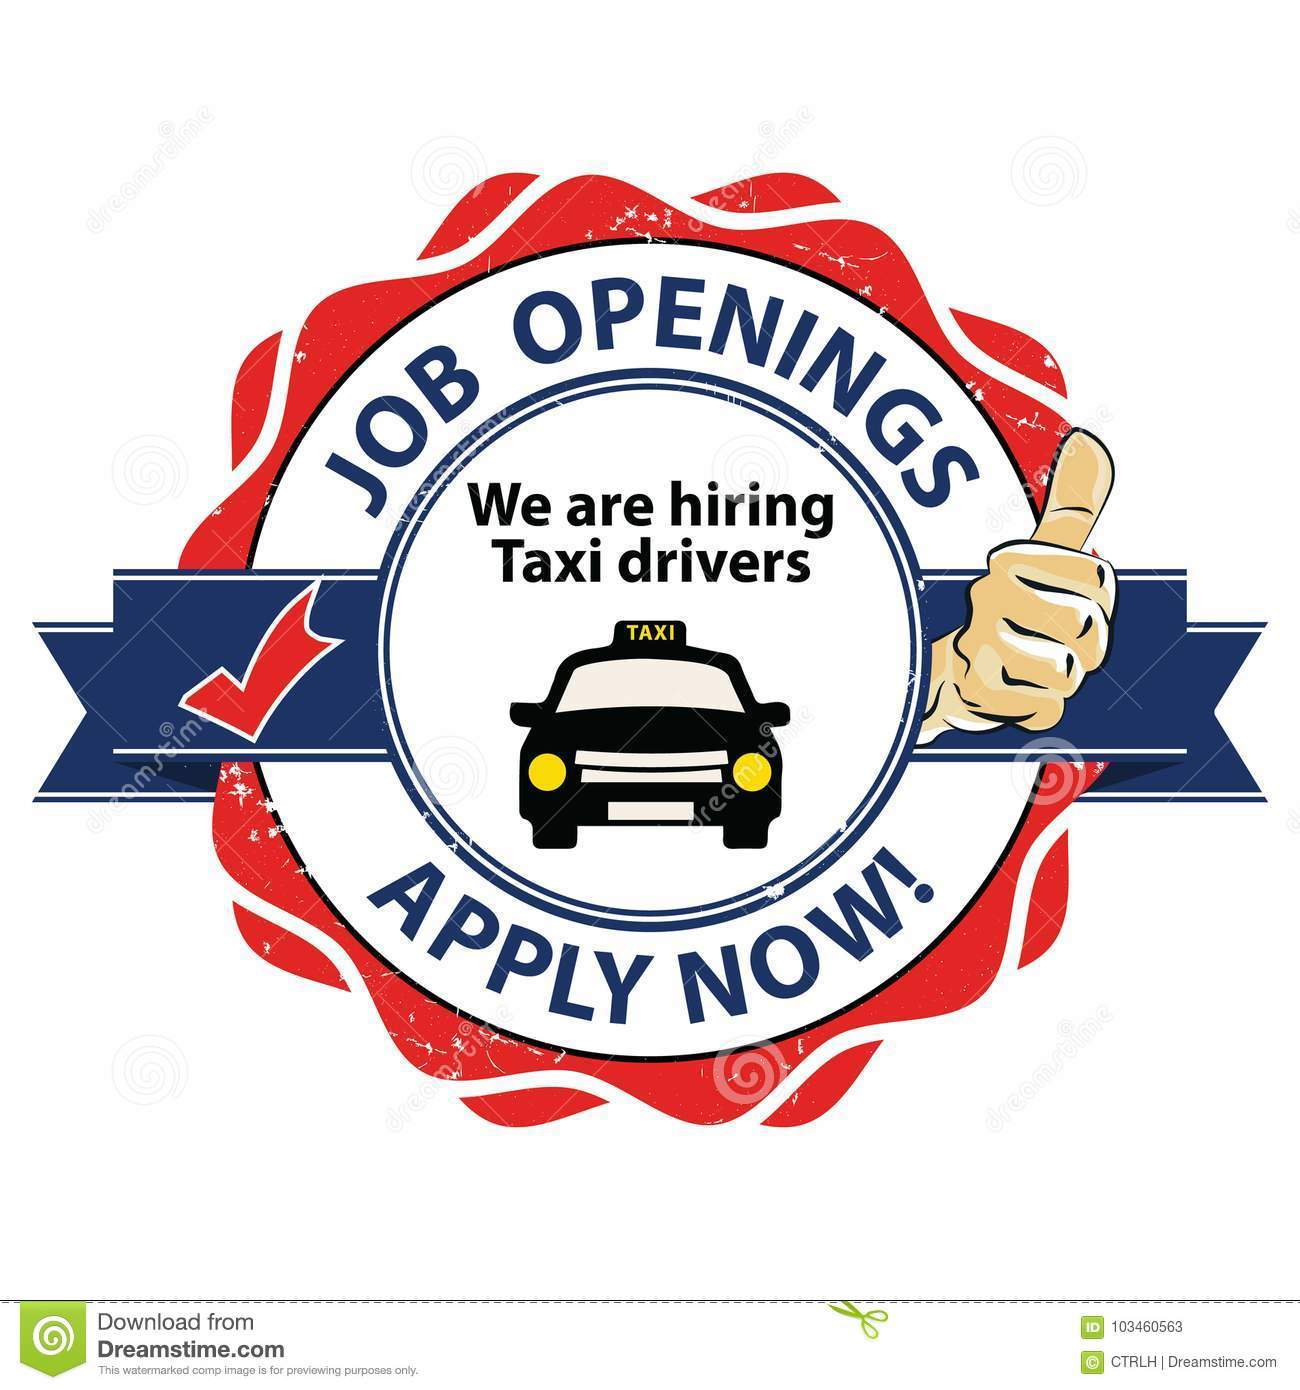 photograph relating to Now Hiring Sign Printable called Activity Openings - We Are Using the services of Cab Motorists - Printable Stamp